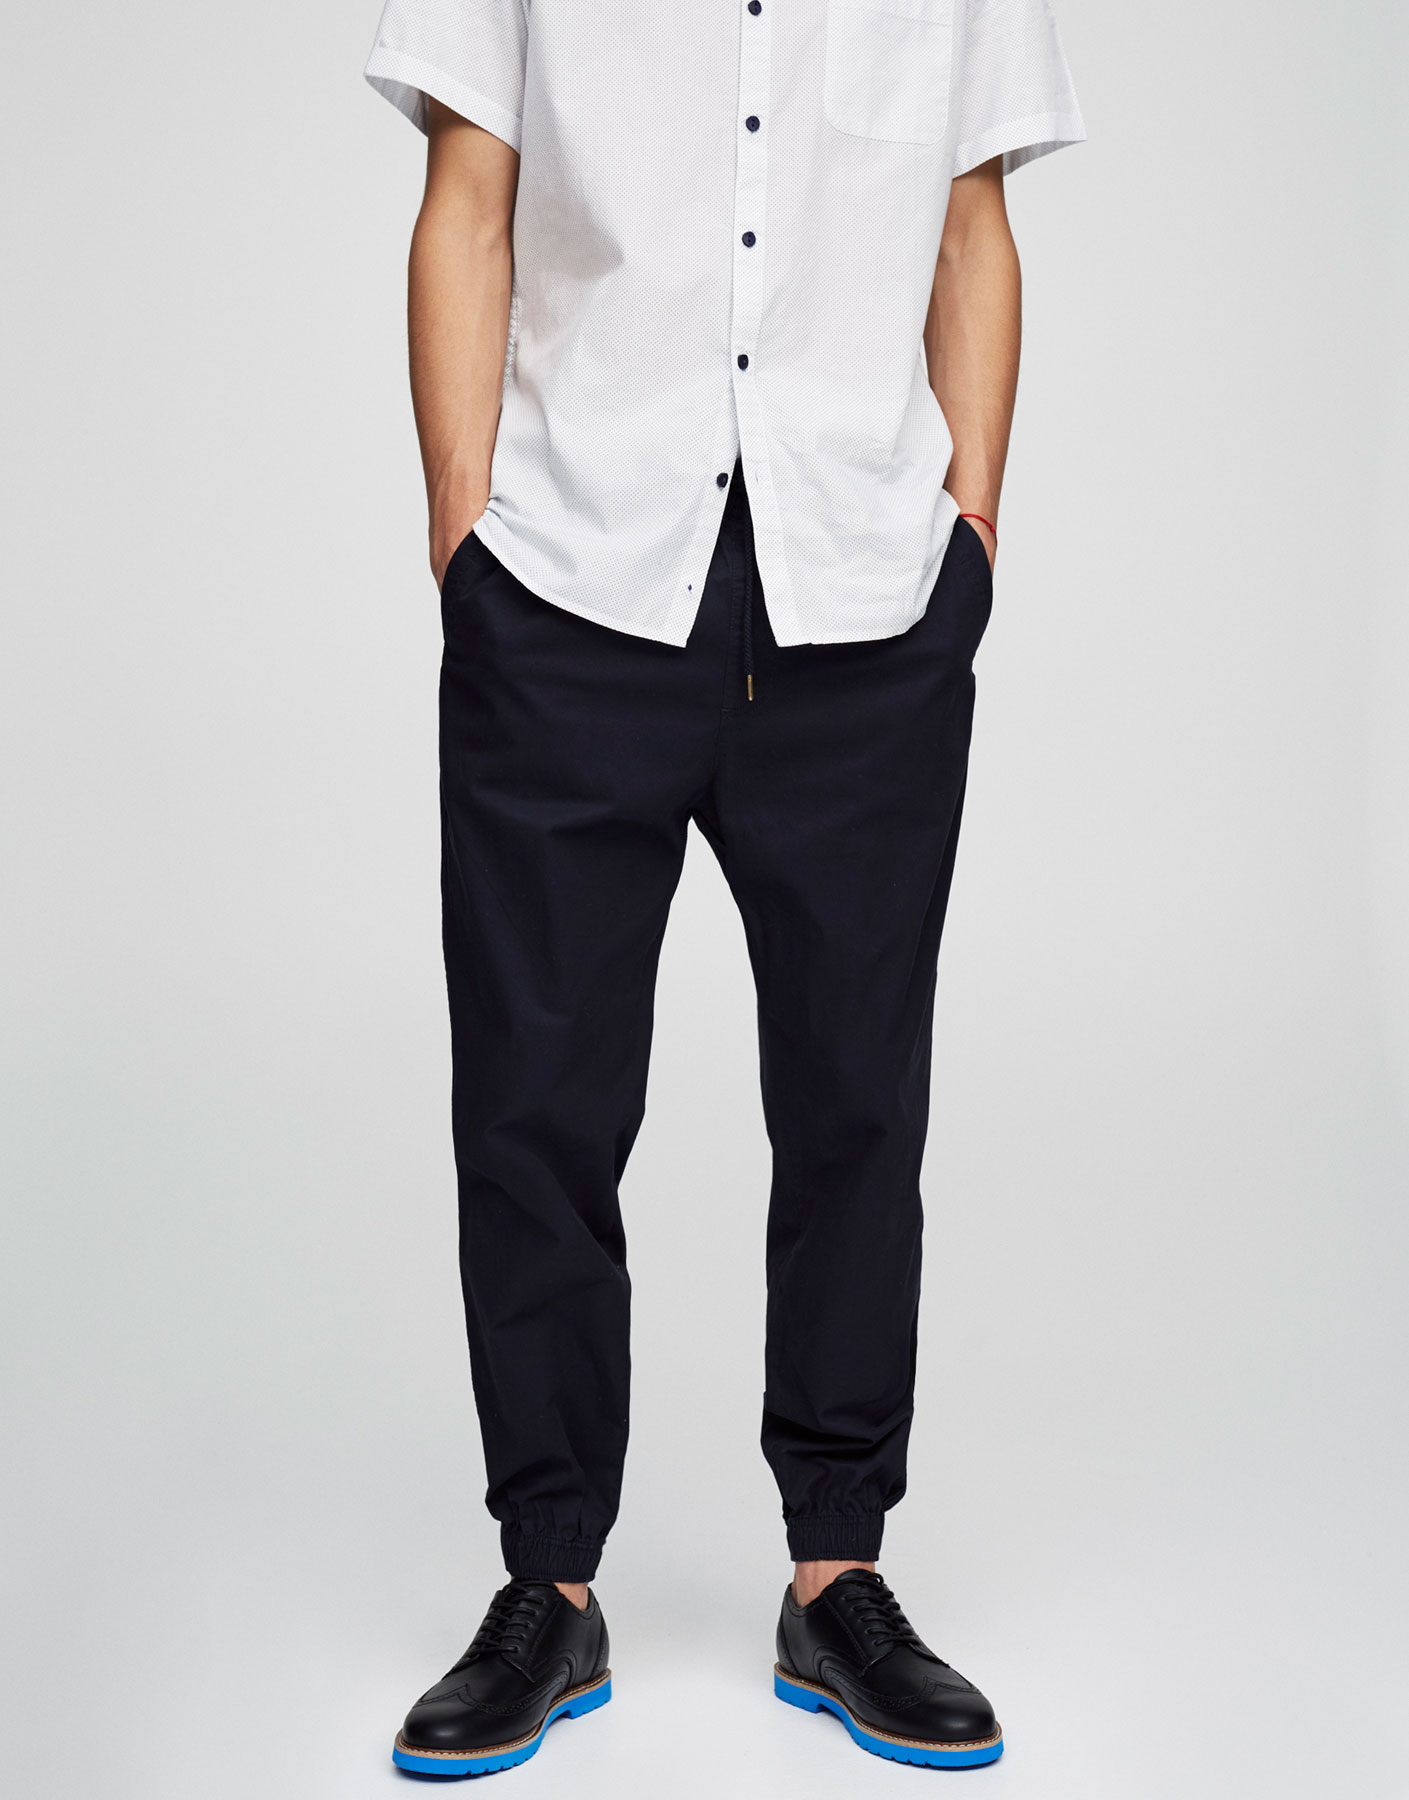 Beach-style trousers